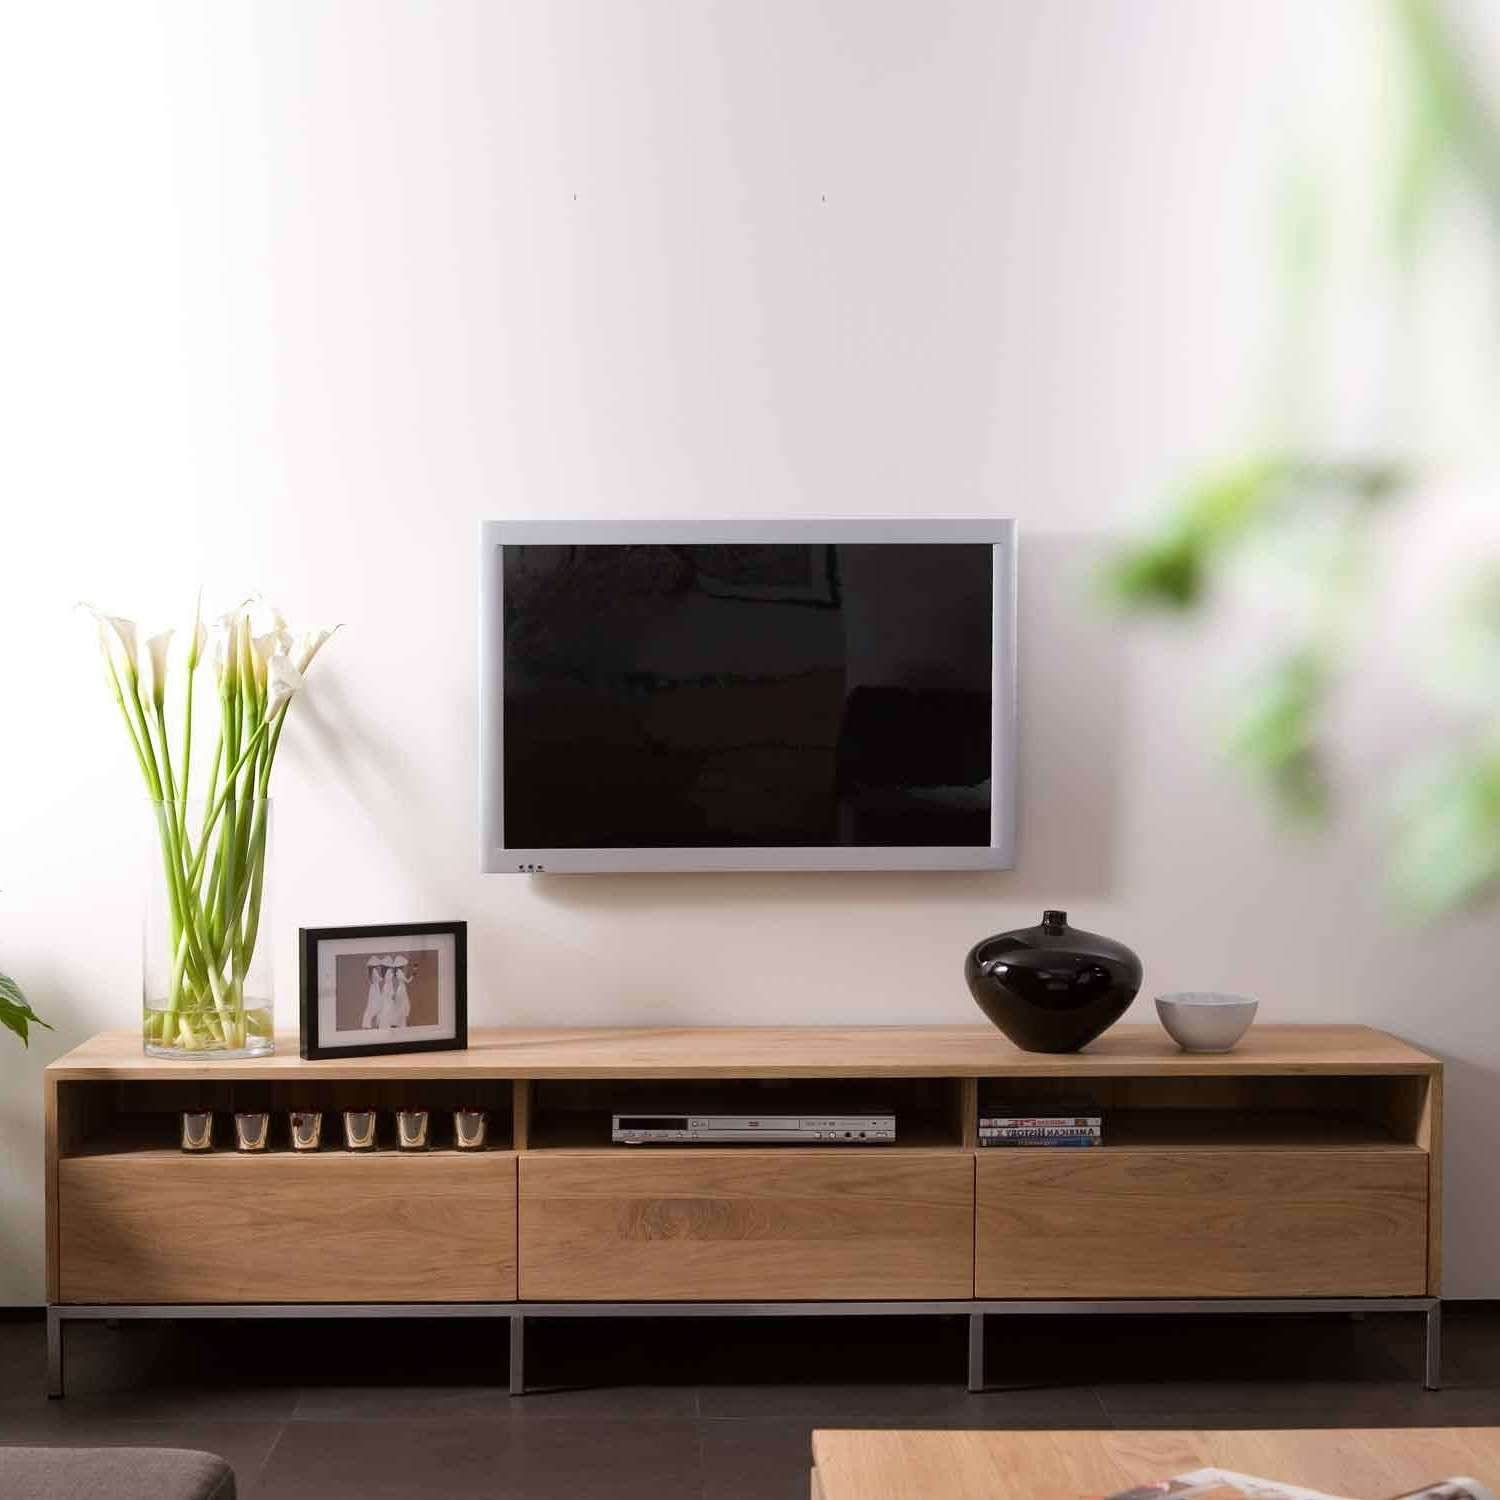 Ethnicraft Ligna Oak Tv Units | Solid Wood Furniture With Contemporary Oak Tv Cabinets (View 9 of 20)